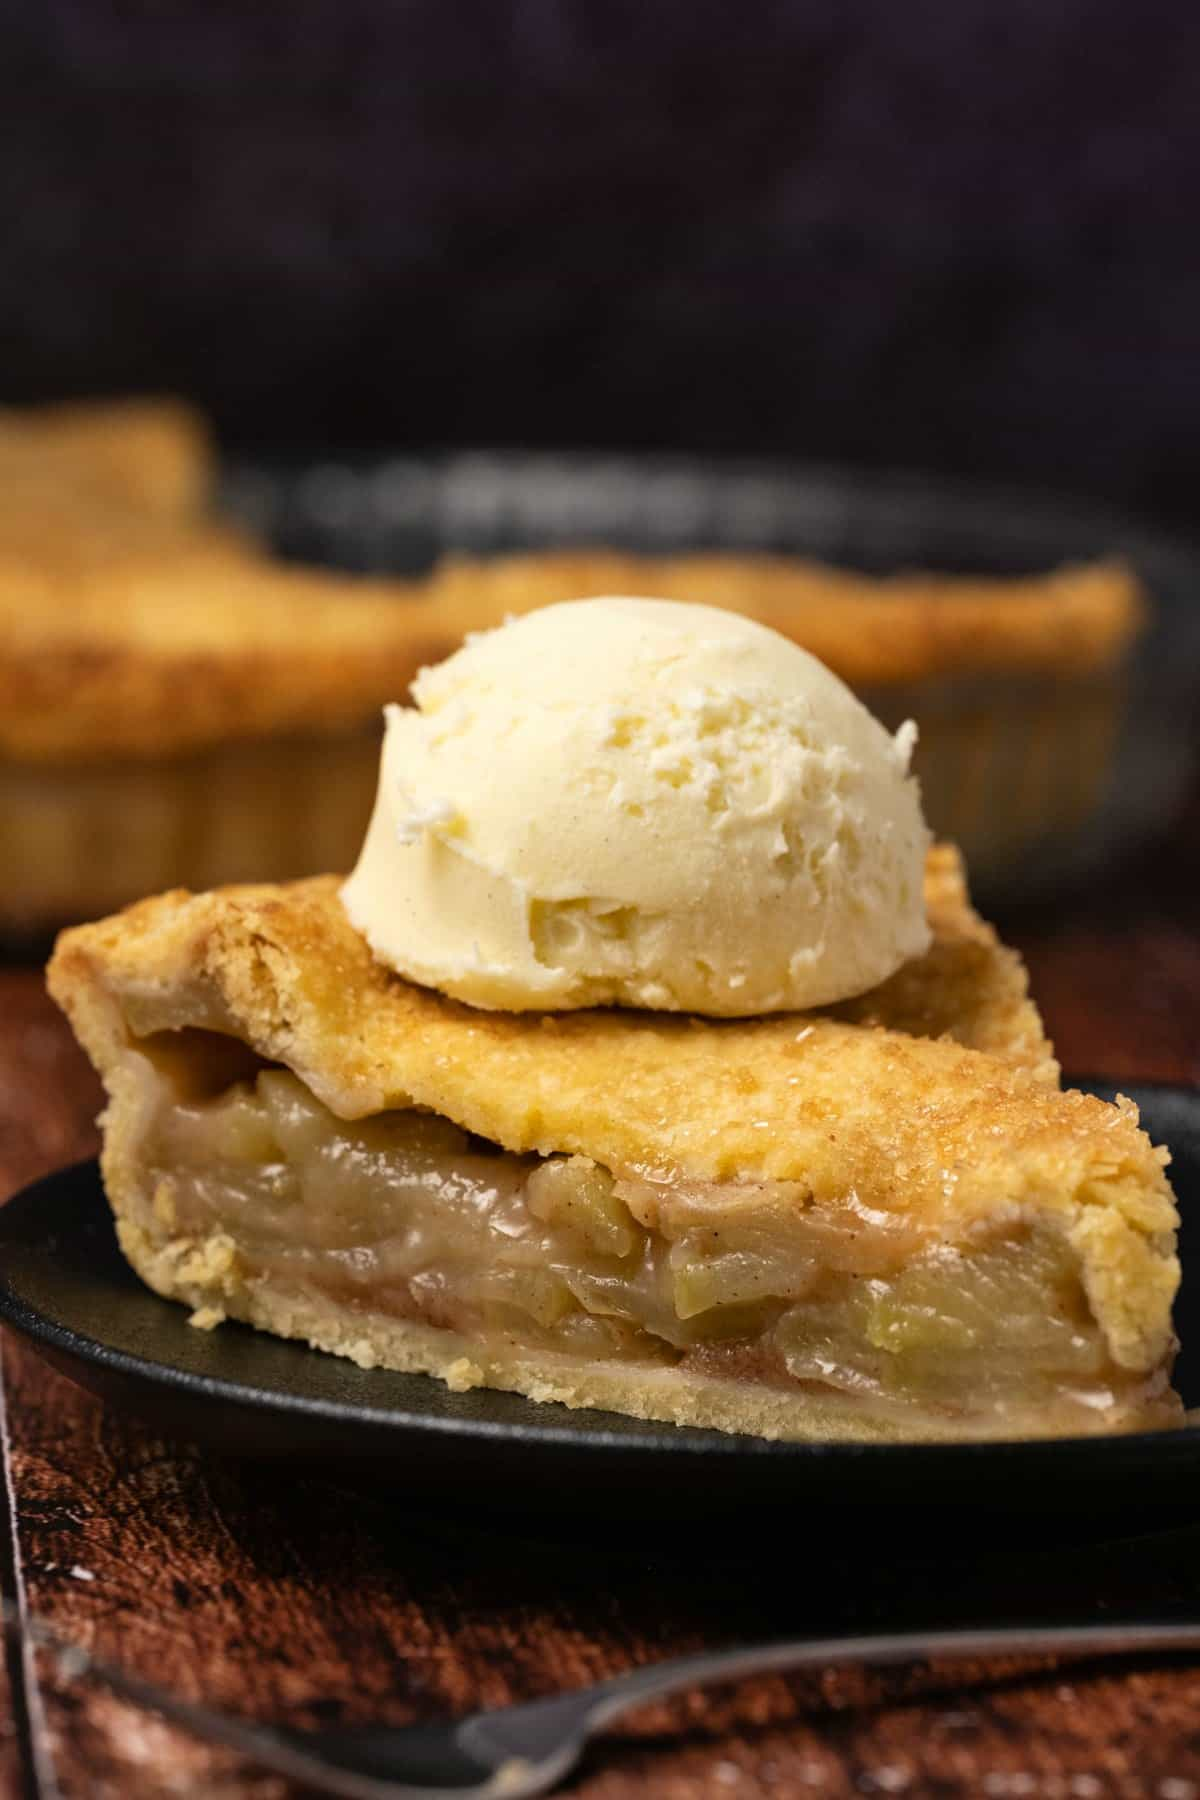 Slice of vegan apple pie topped with a scoop of ice cream on a black plate.